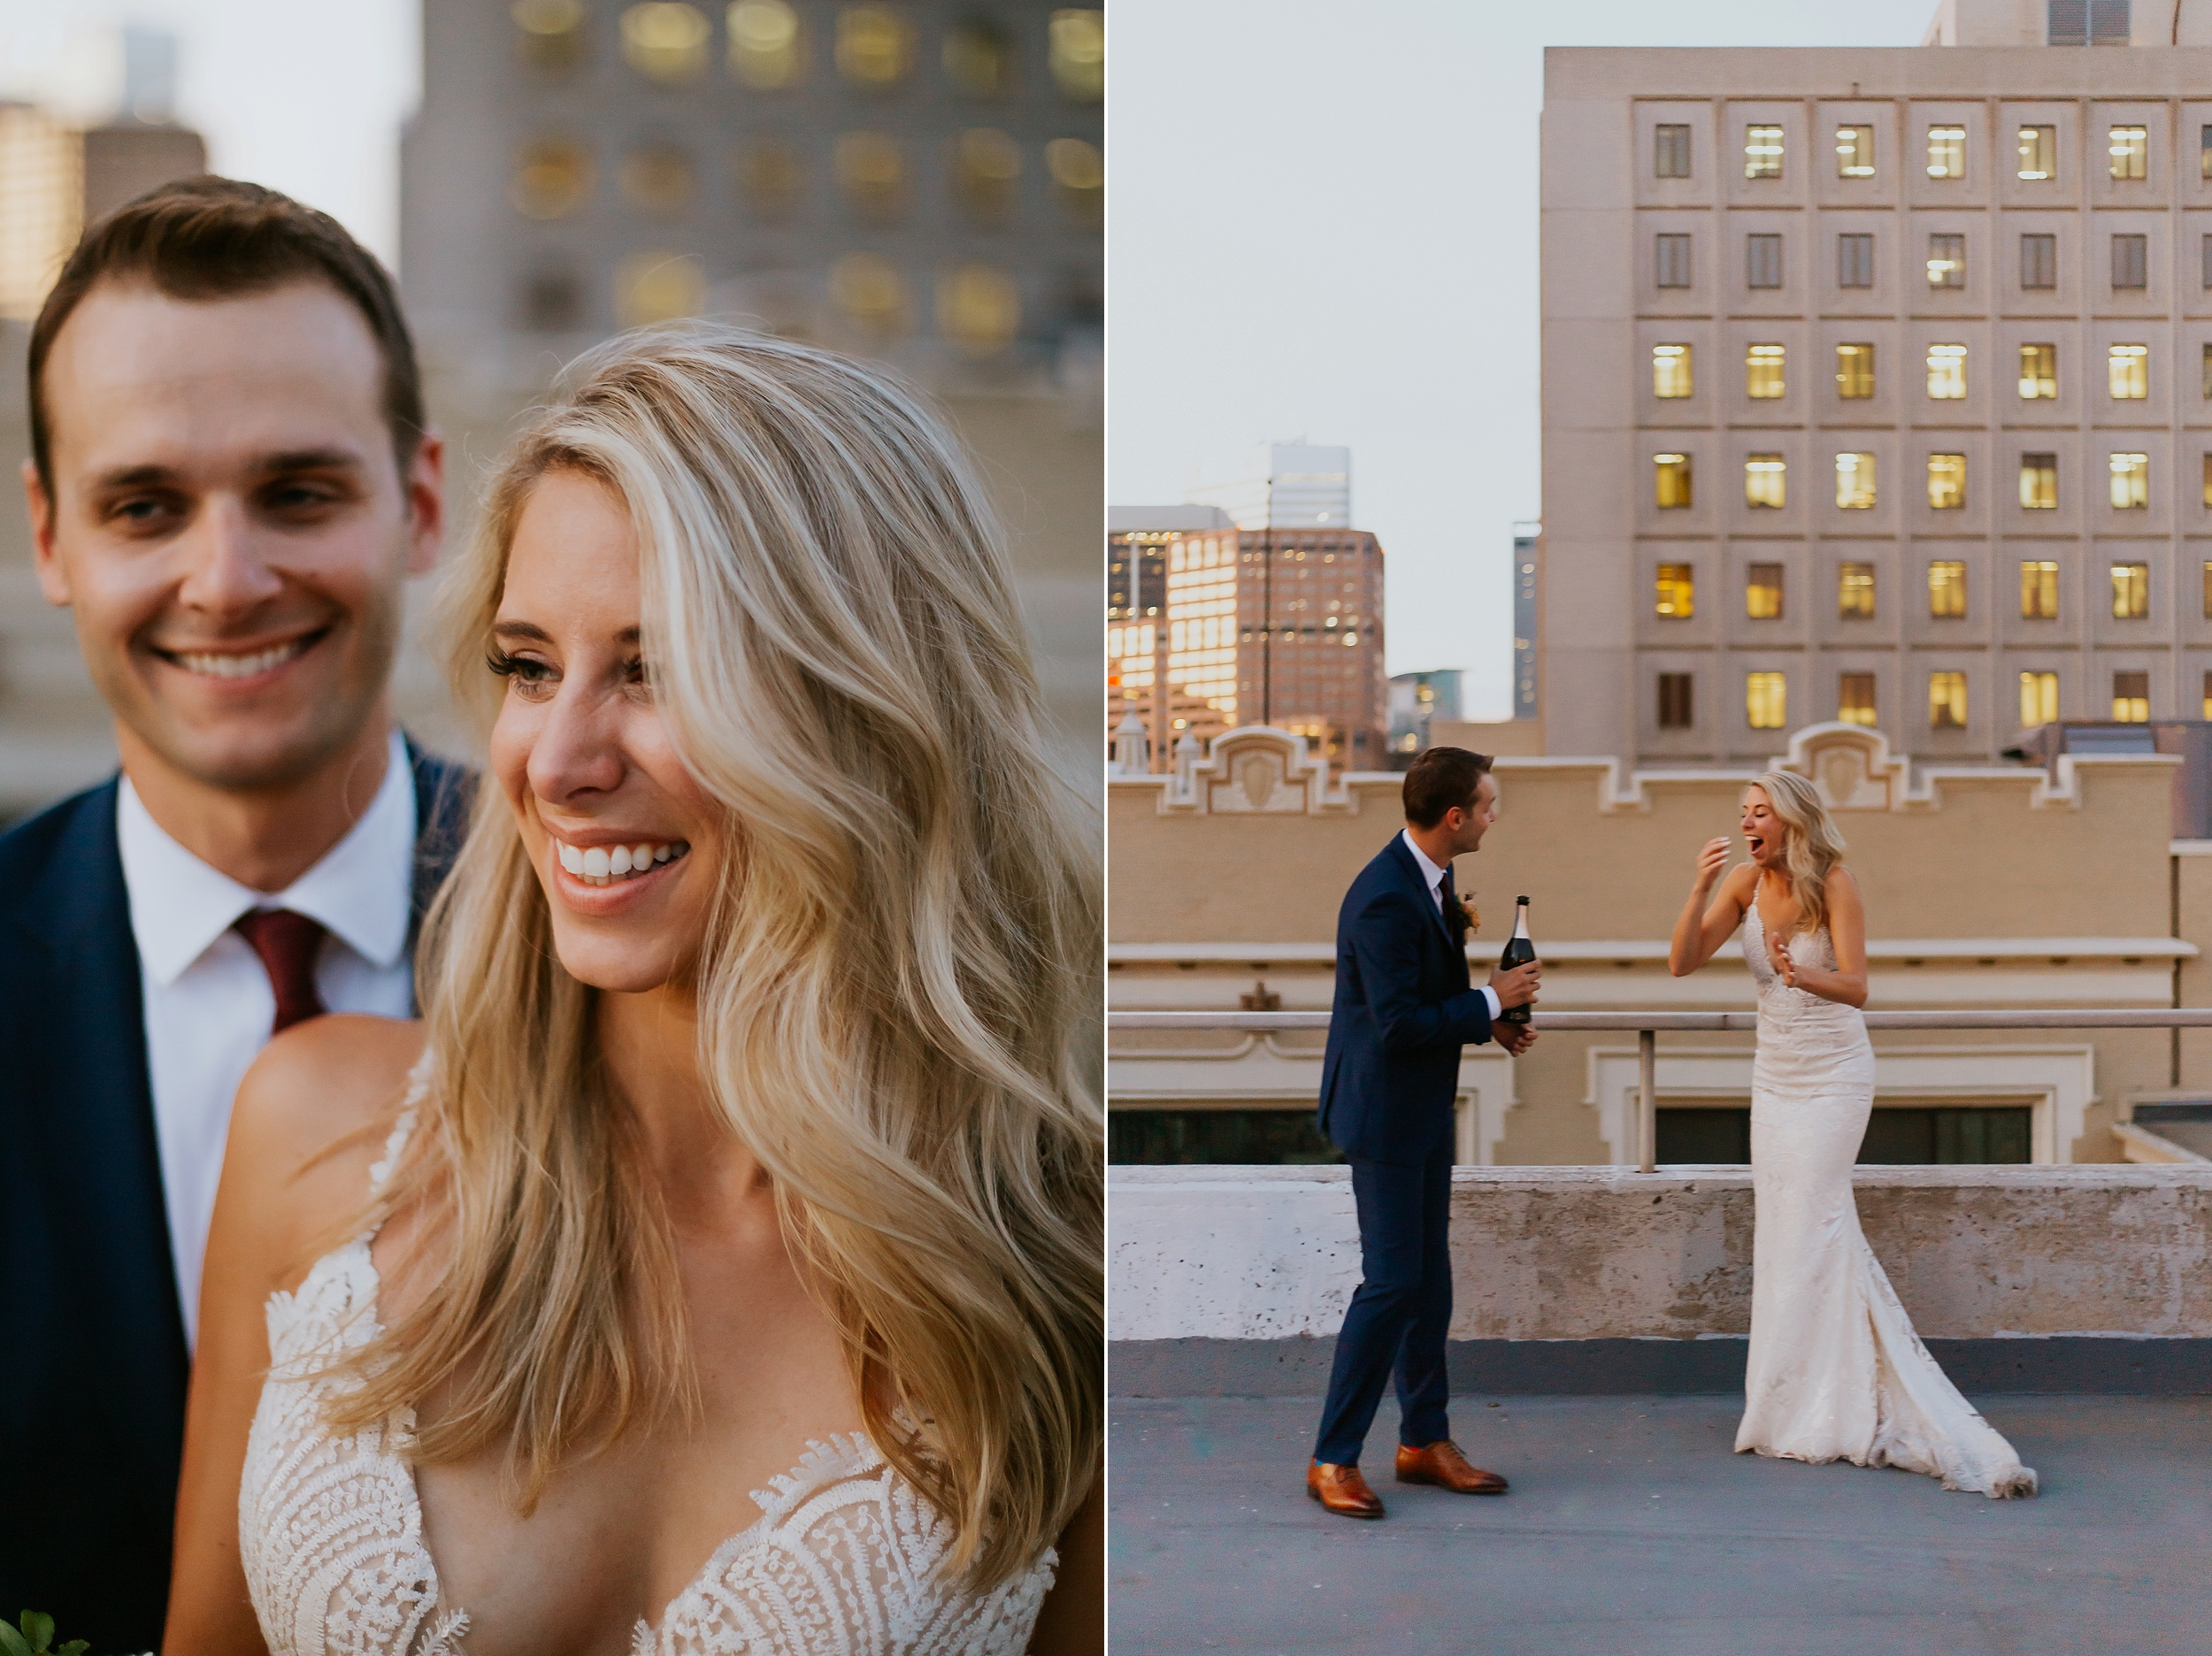 DowntownDenver_Colorado_Elopement_Anniversary_Session_Urban_Edit-42.jpg